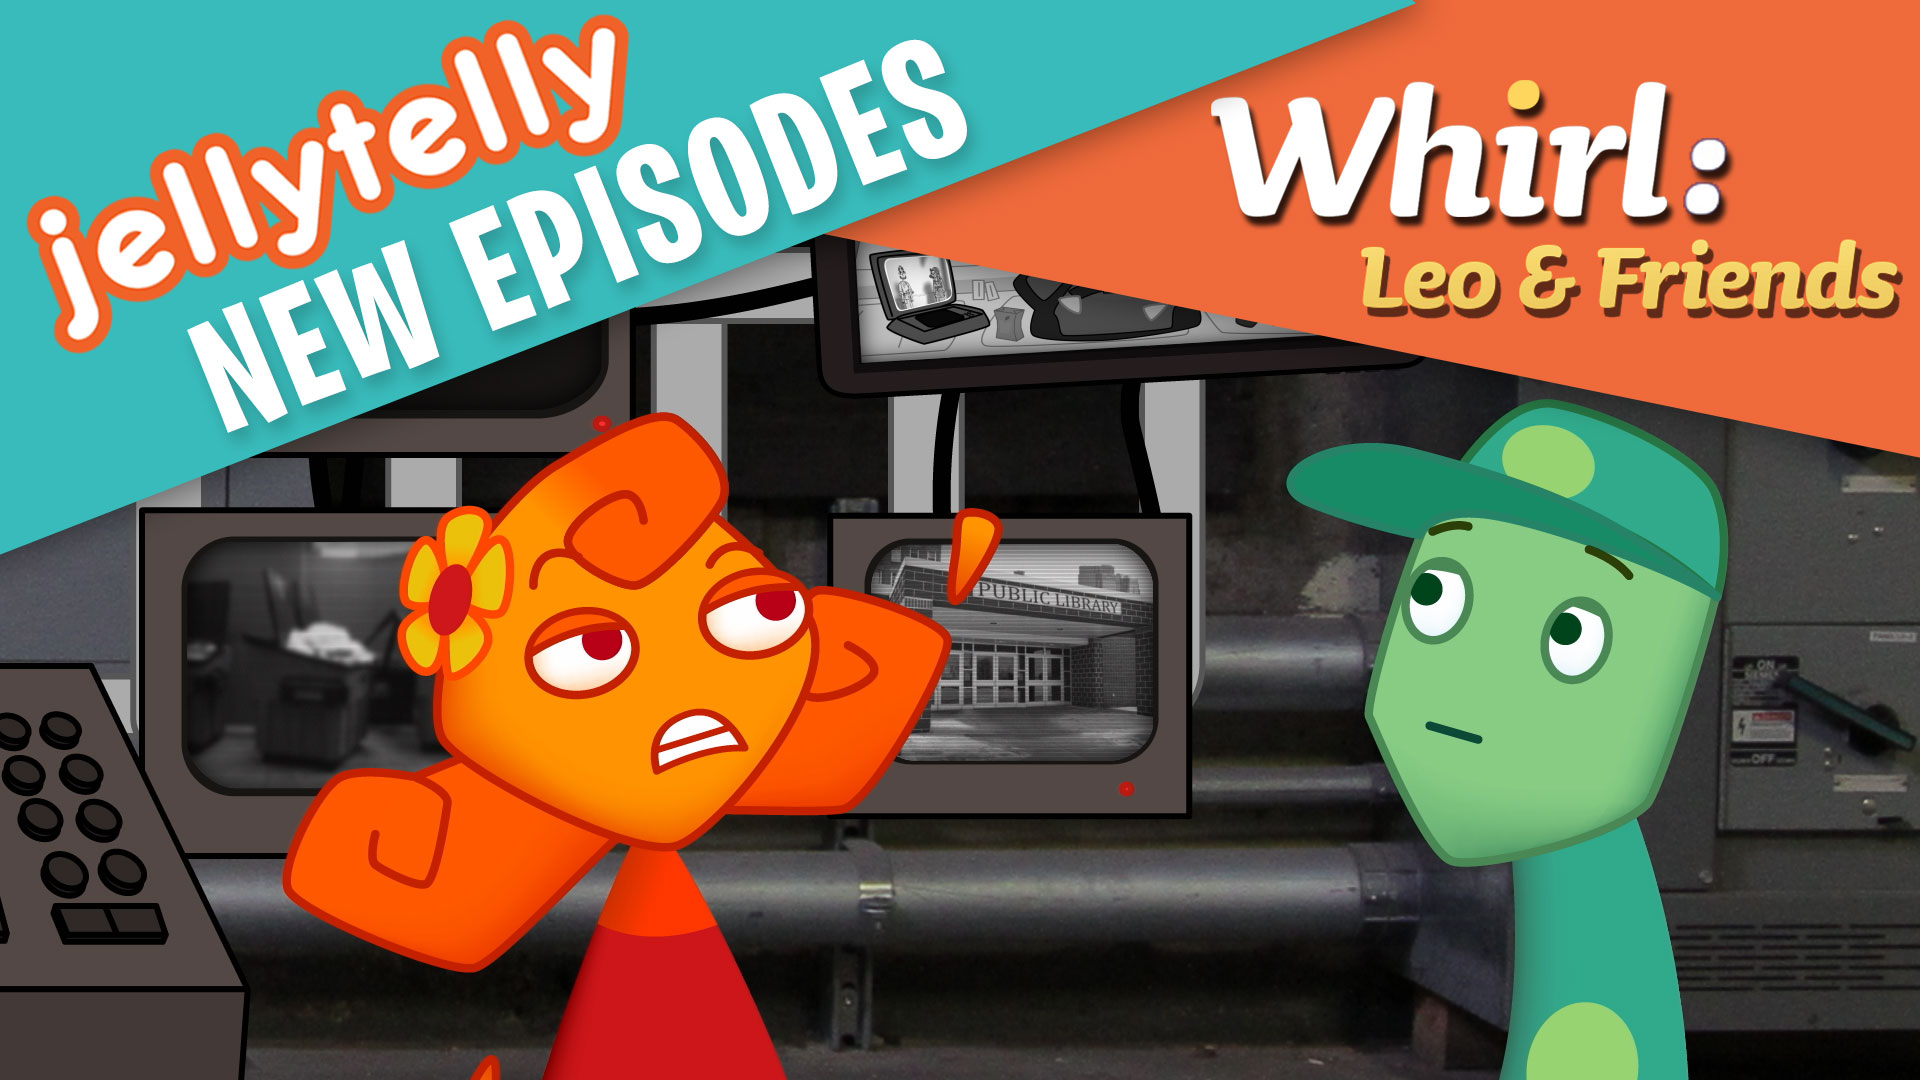 Whirl leo v4 ep07 featured preview image